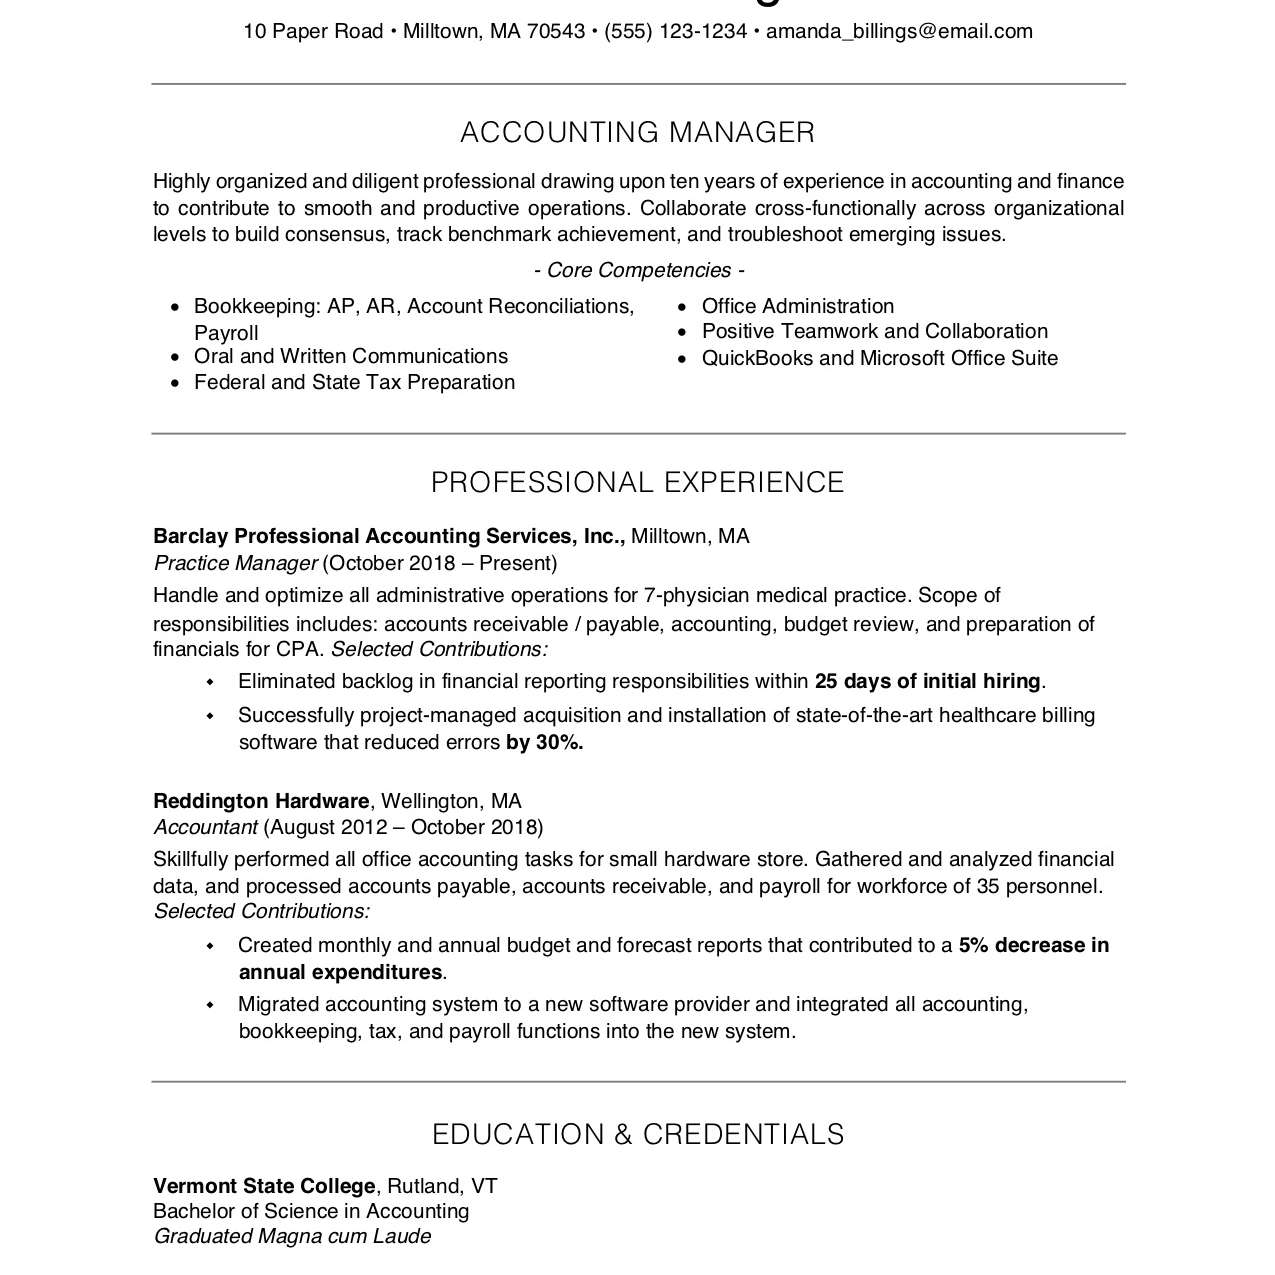 free professional resume examples and writing tips samples 2063596res1 building classes Resume Professional Resume Samples Free